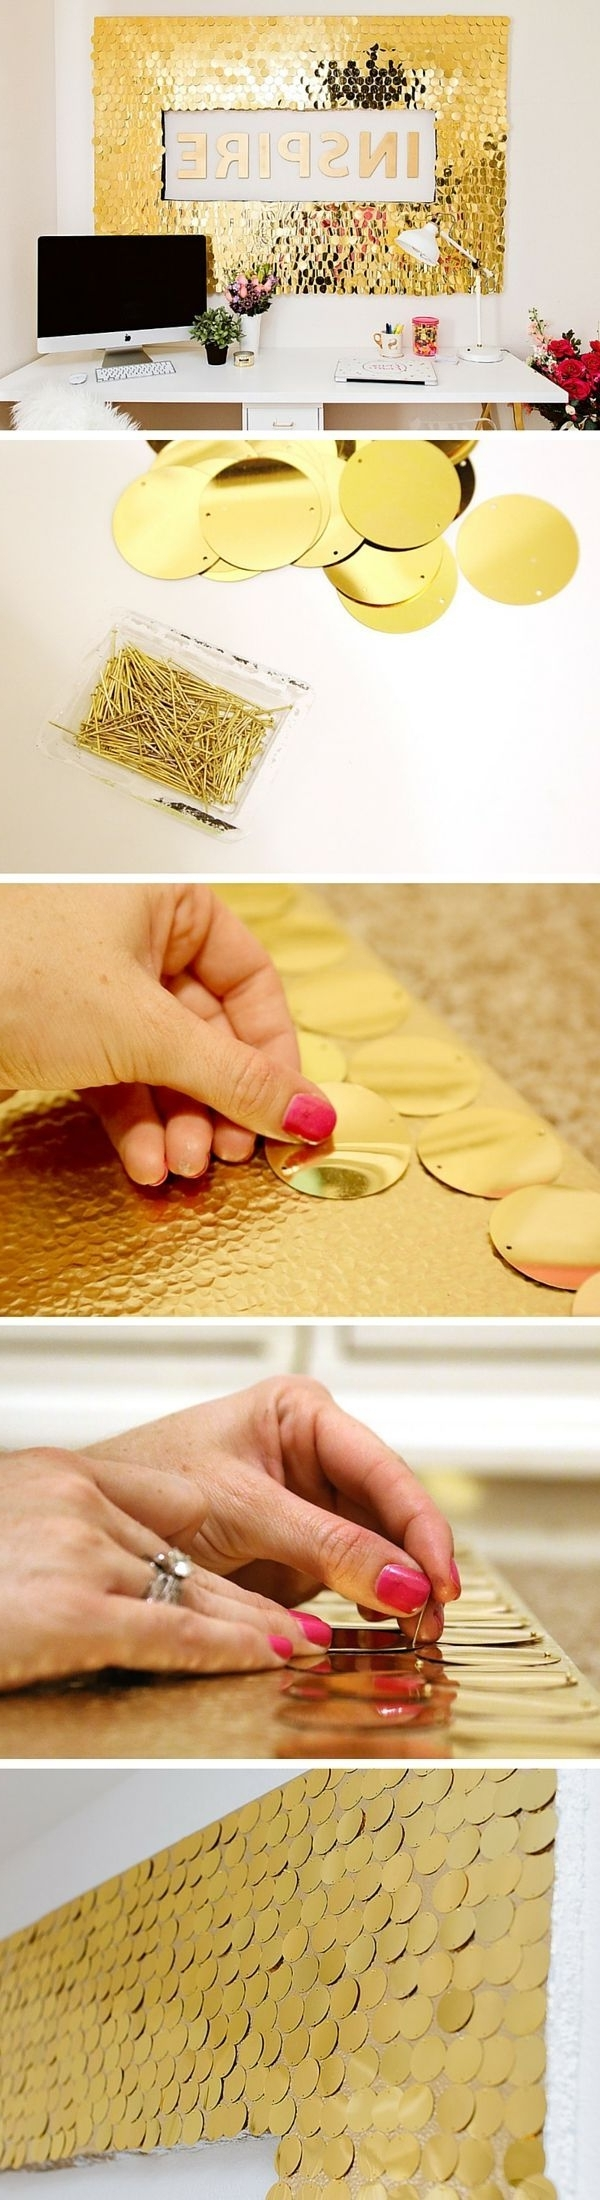 Diy Art Projects, Hexagon With Latest Pinterest Diy Wall Art (View 4 of 15)